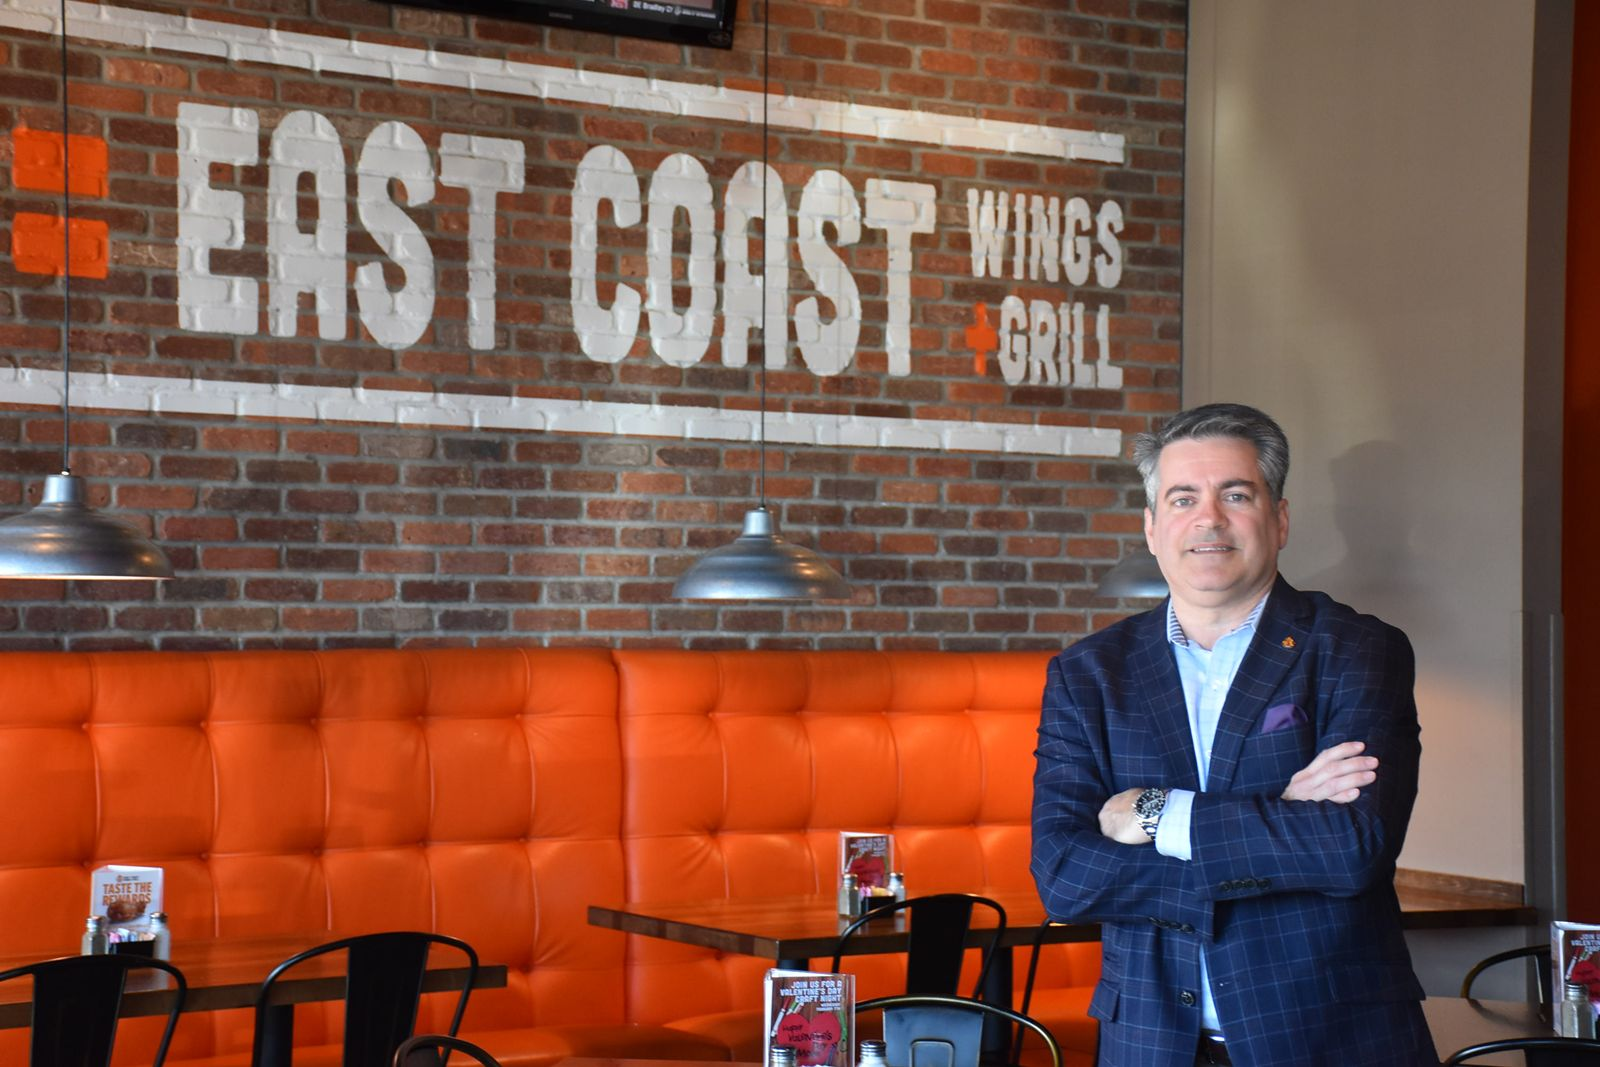 Sam Ballas, CEO and president of East Coast Wings + Grill